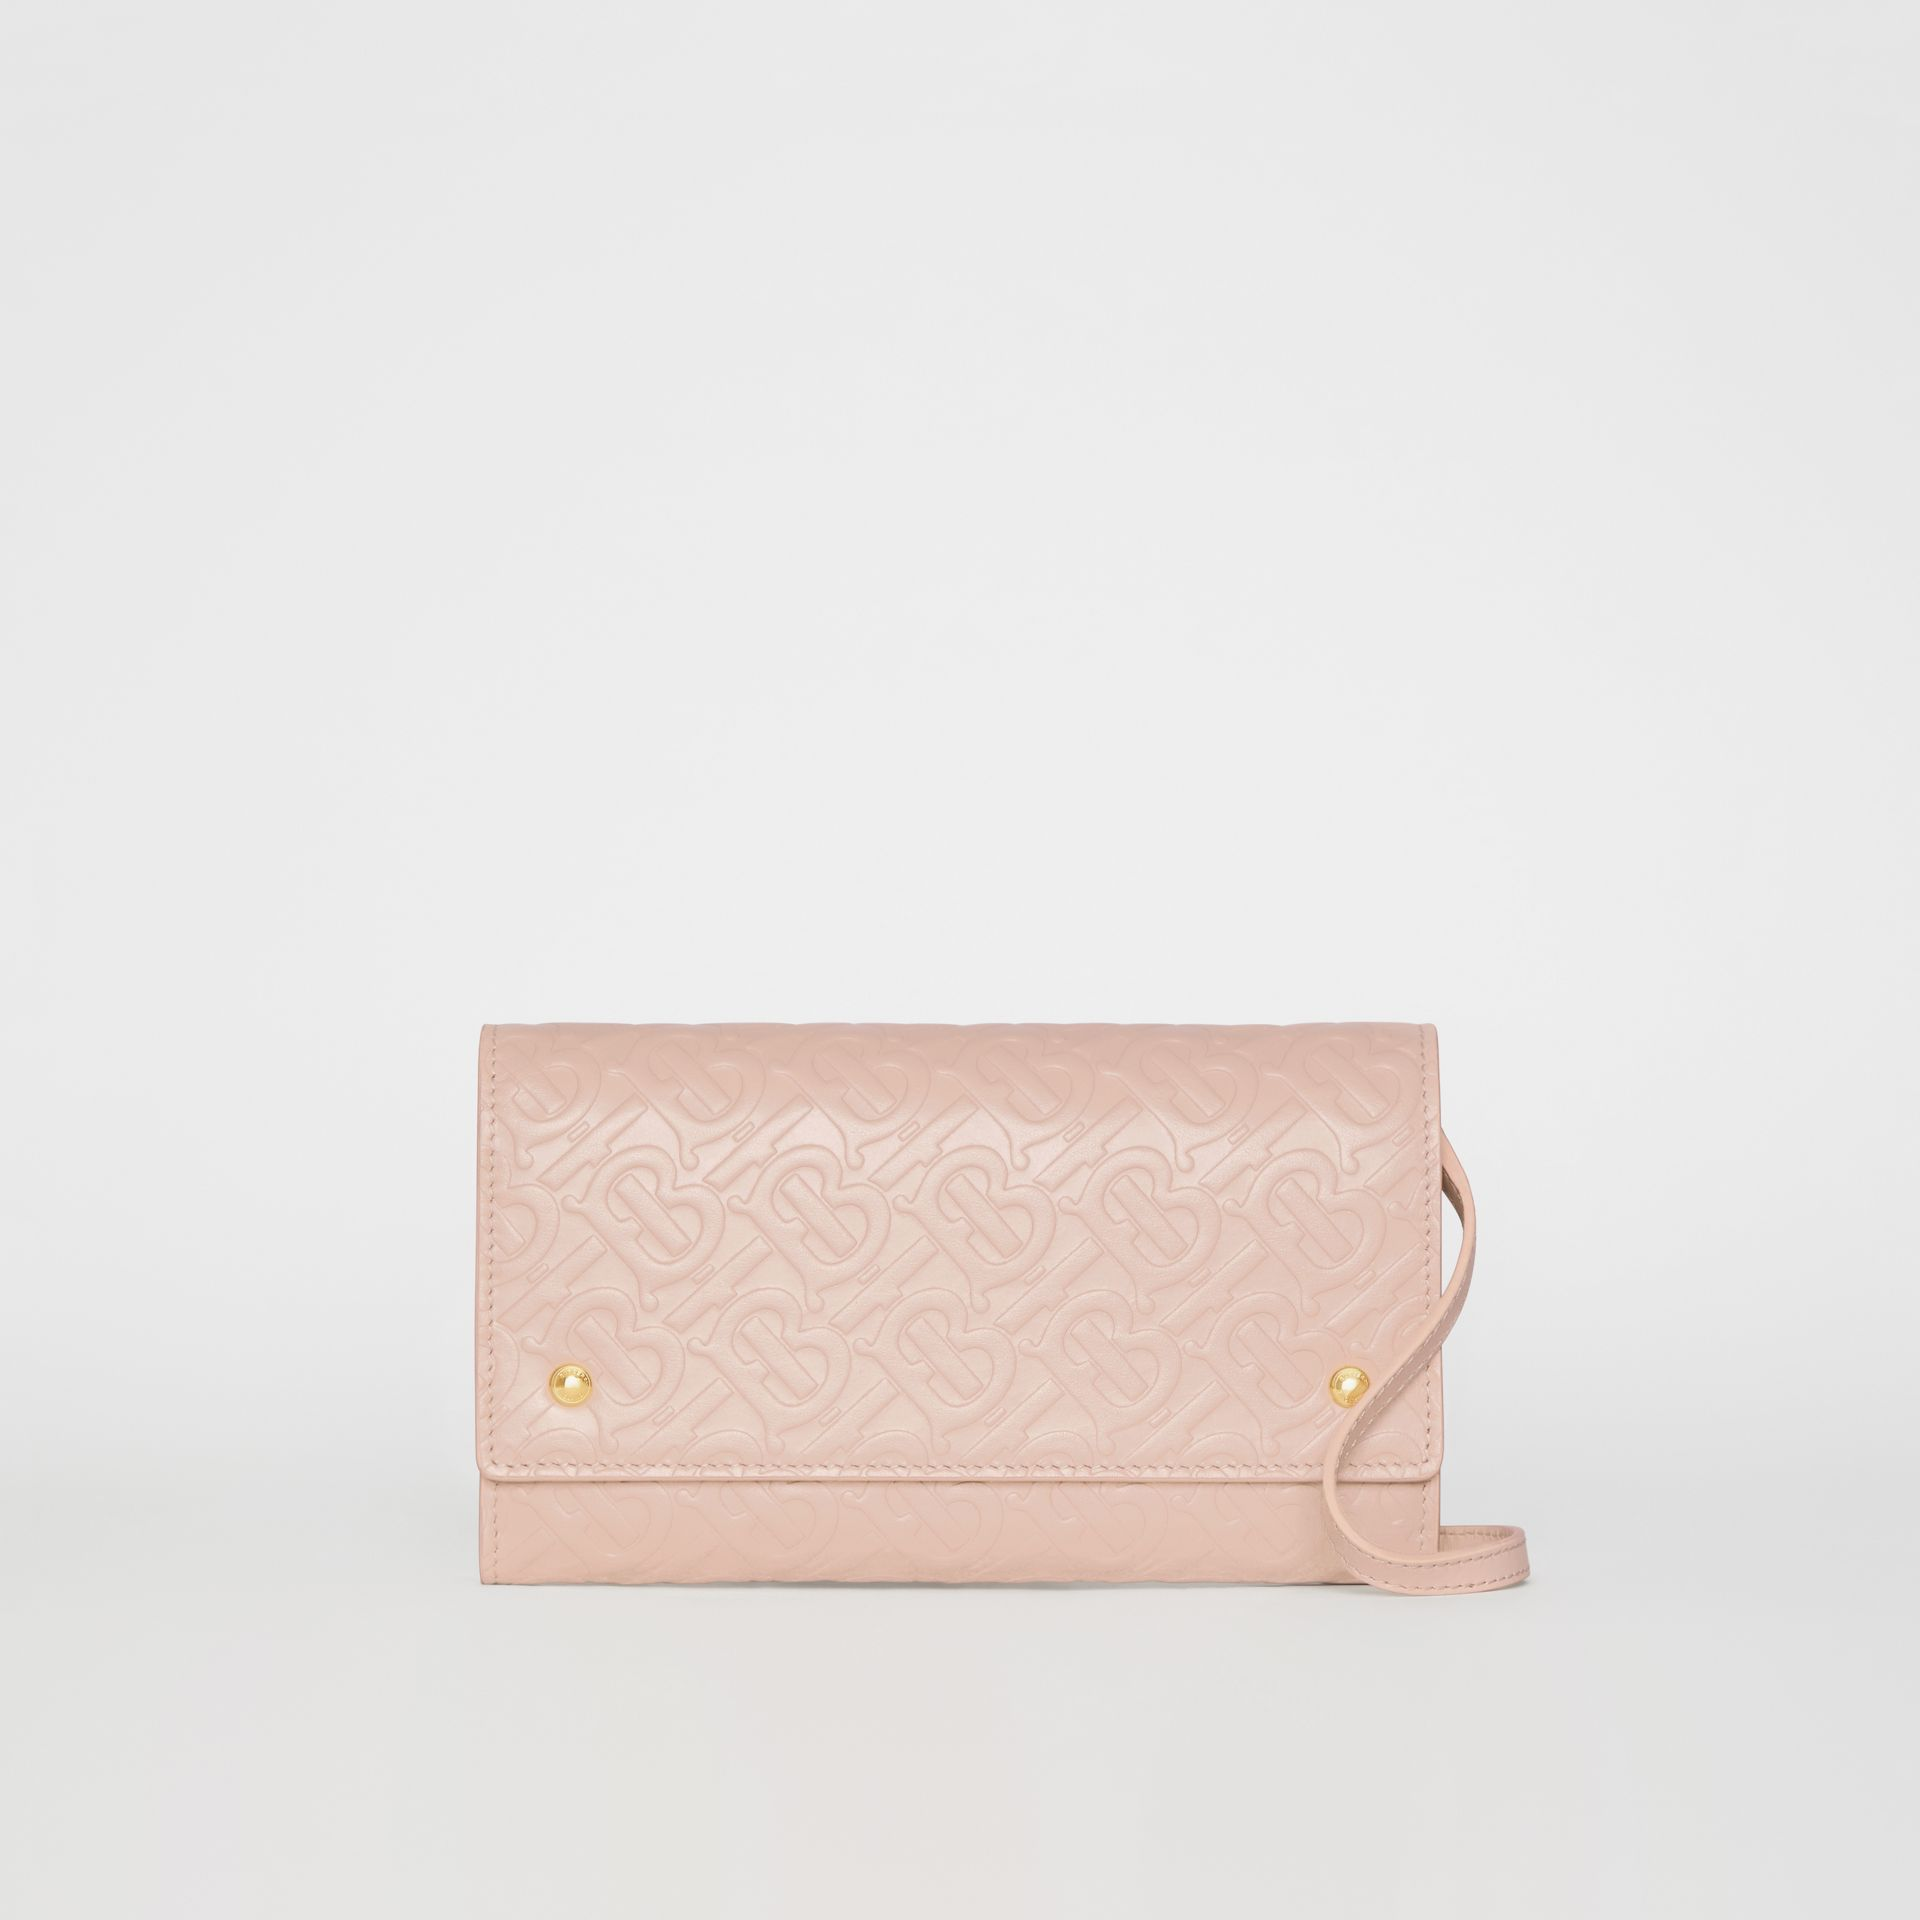 Portefeuille en cuir Monogram et sangle amovible (Beige Rose) - Femme | Burberry - photo de la galerie 0